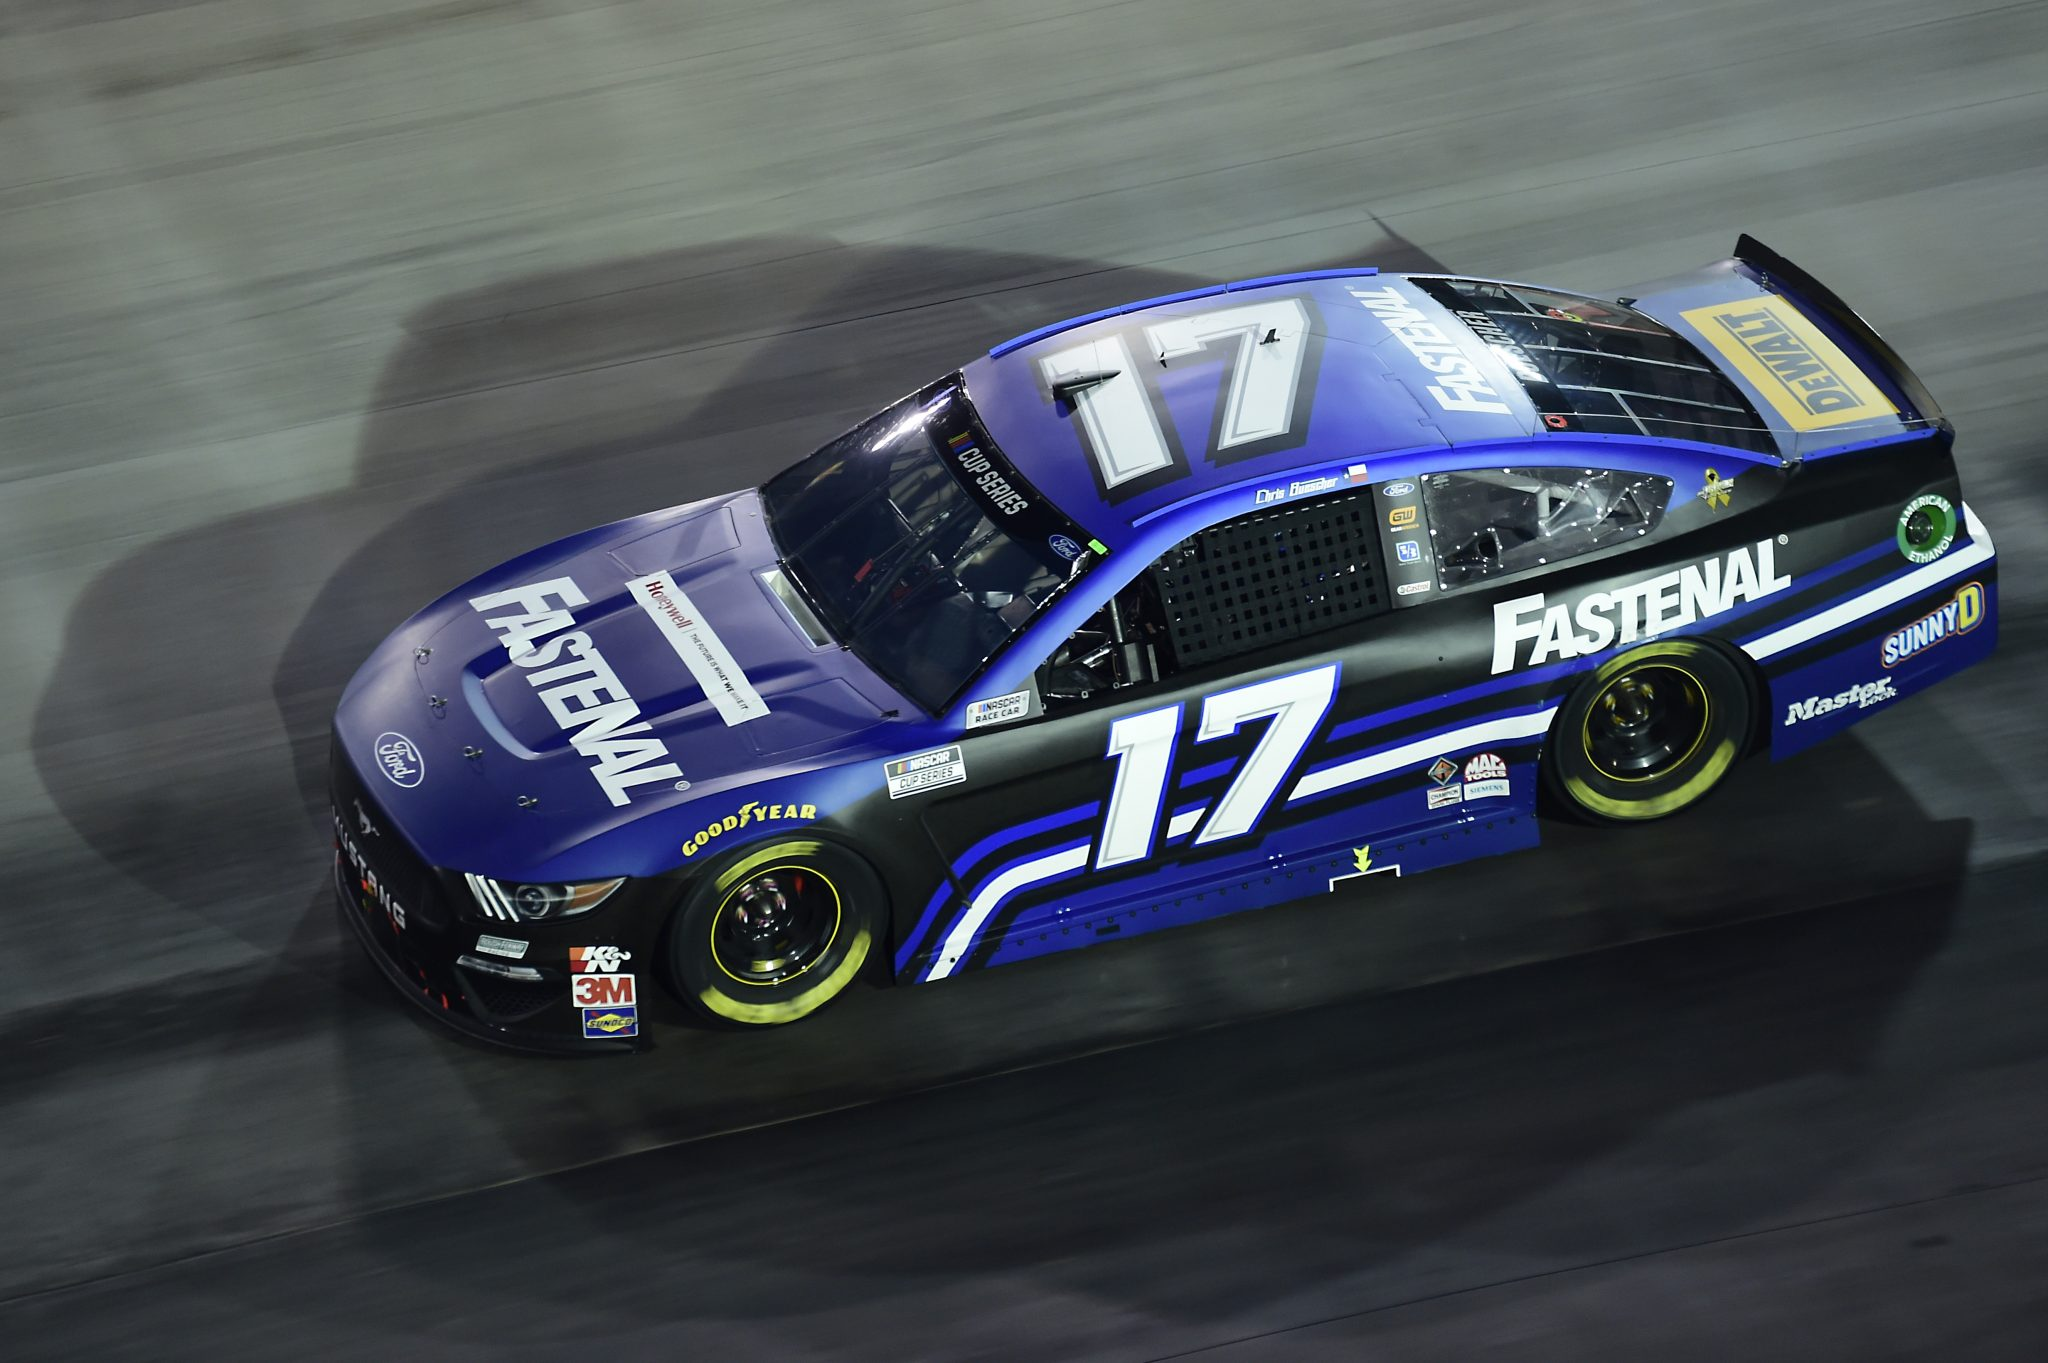 BRISTOL, TENNESSEE - SEPTEMBER 19: Chris Buescher, driver of the #17 Fastenal Ford, drives during the NASCAR Cup Series Bass Pro Shops Night Race at Bristol Motor Speedway on September 19, 2020 in Bristol, Tennessee. (Photo by Jared C. Tilton/Getty Images) | Getty Images